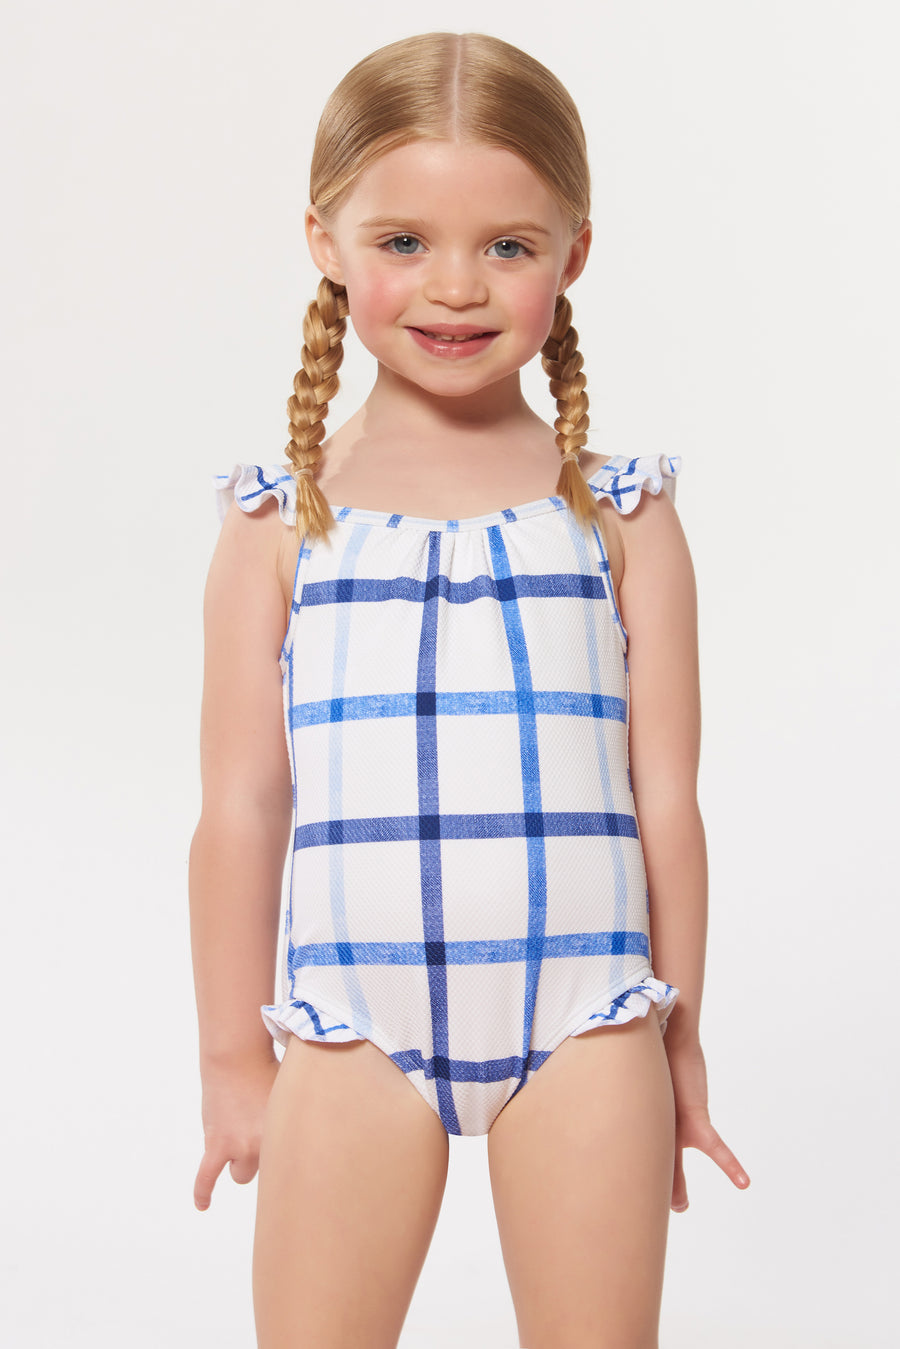 79a5c8bf81a Penelope Kids Ruffle 1 PC - White Blue - Red Carter